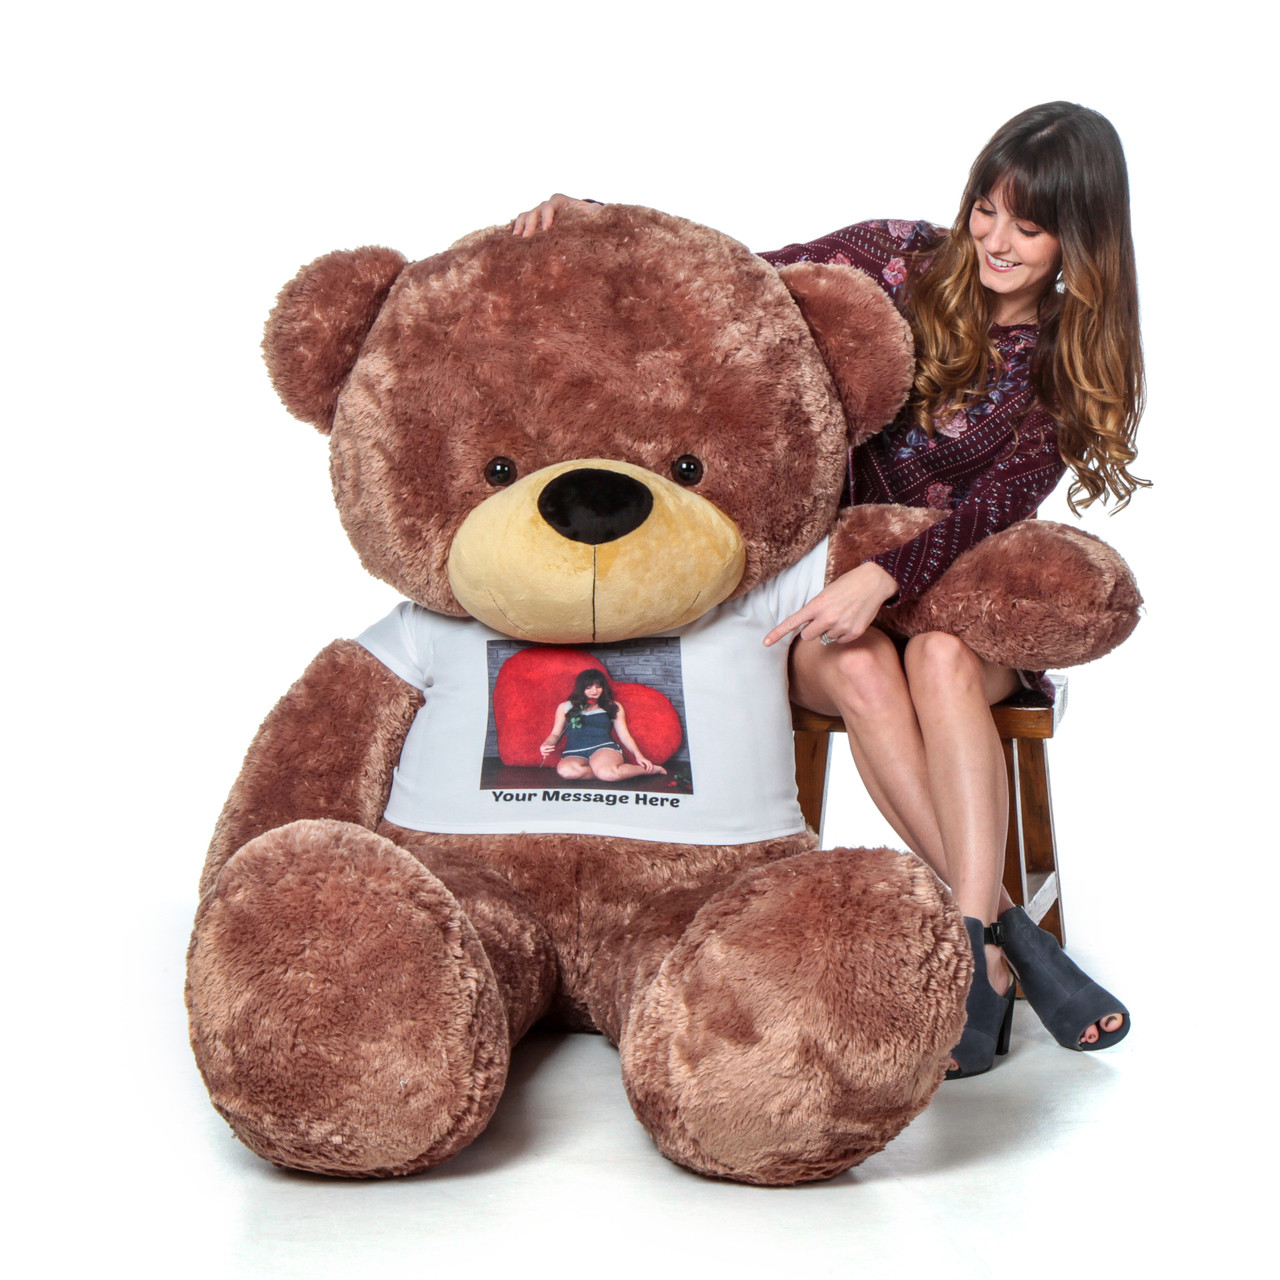 e6a9ee3bcb4 Super Soft Adorable Valentine's Gift Giant Teddy Bear for Girlfriend with  Personalized T-shirt